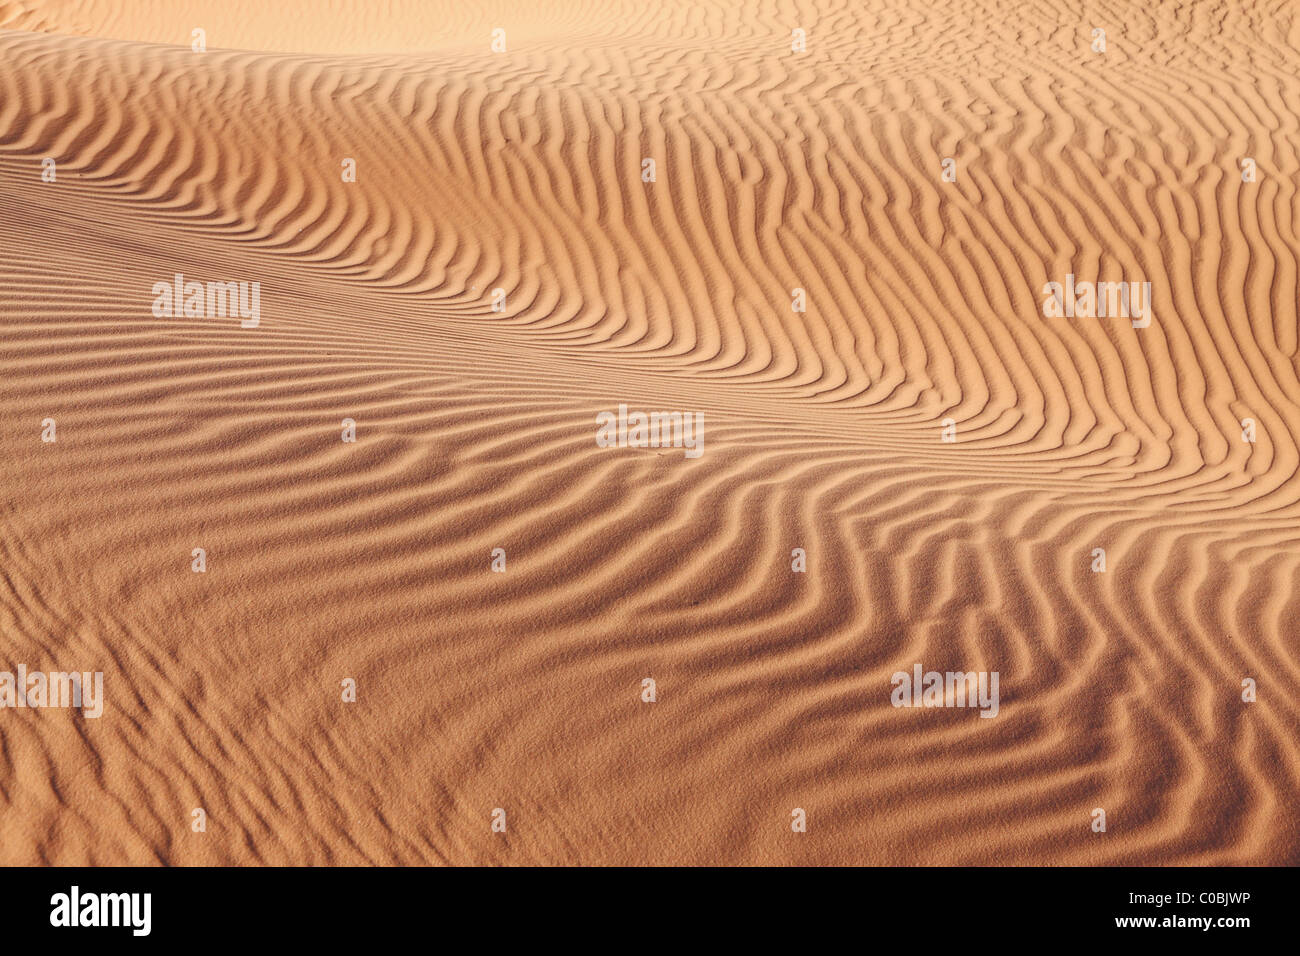 Intricate curves of sand waves on the sand dunes U.S. - Stock Image